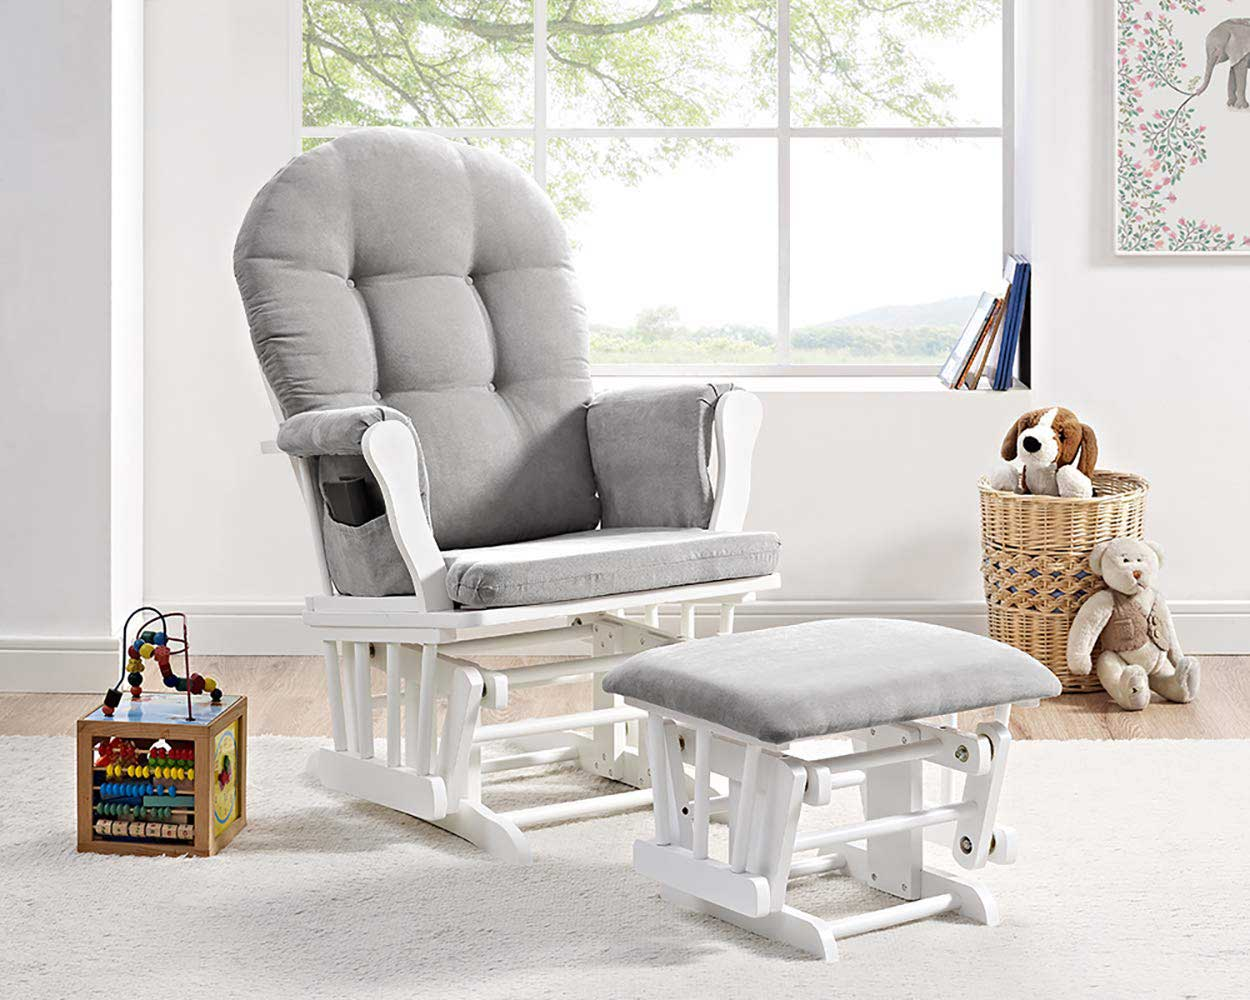 Rocking chair in bedroom